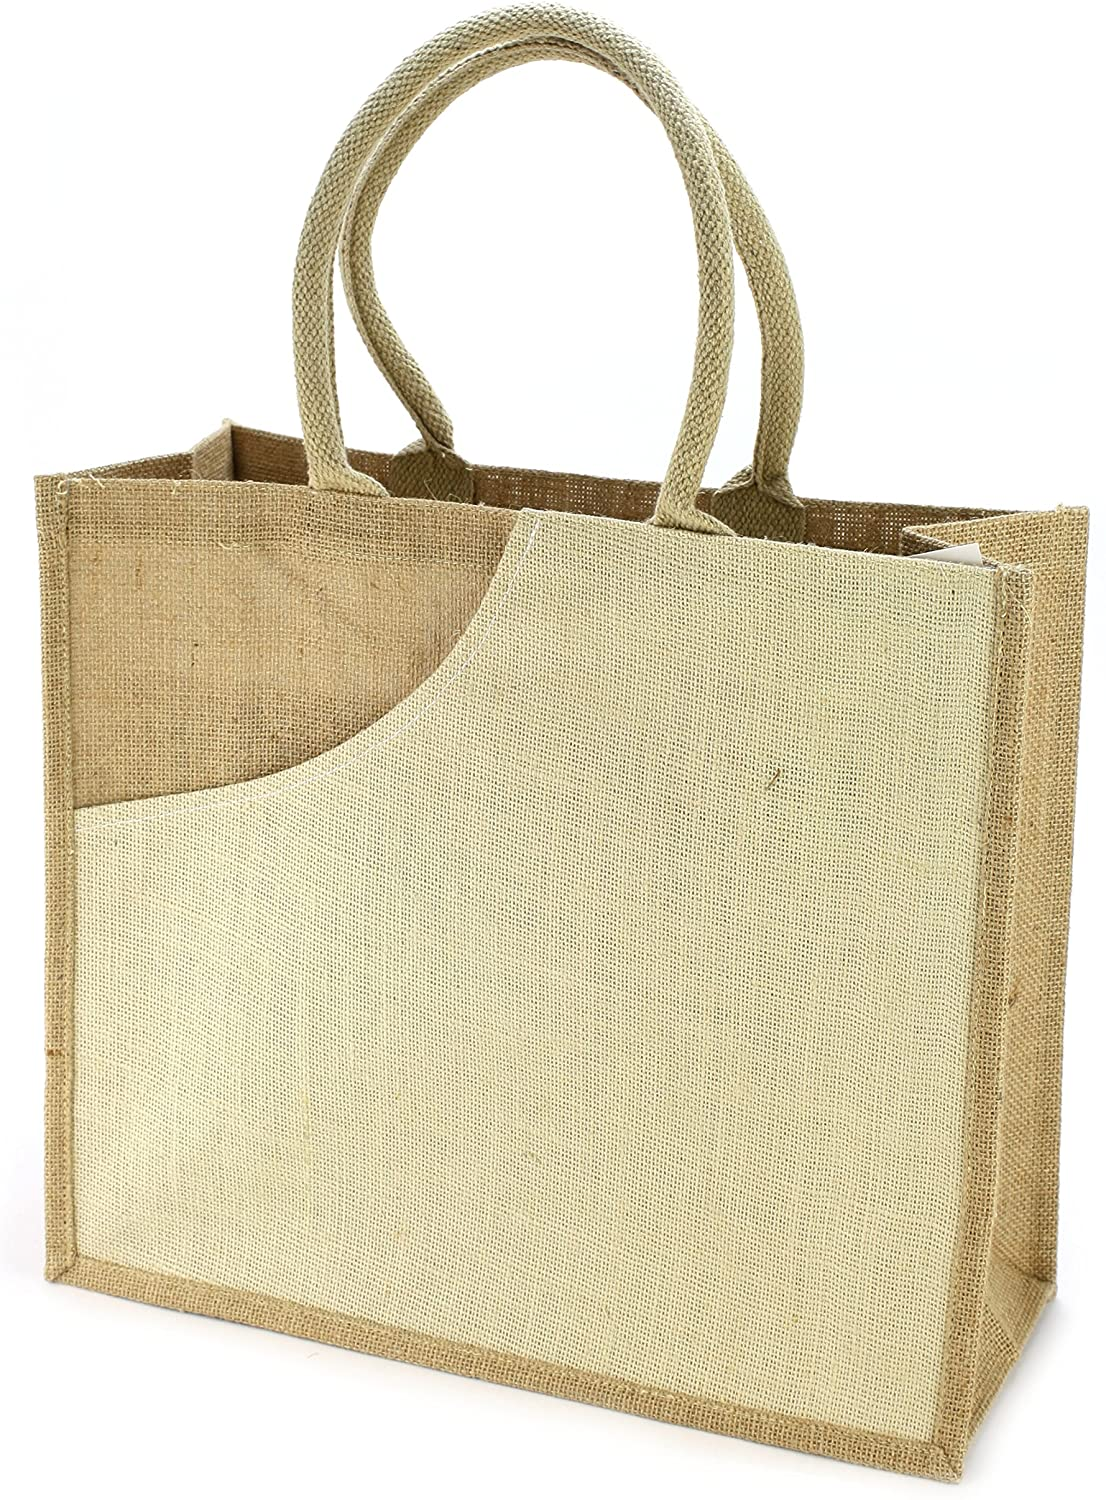 "Natural/Ivory Jute Tote Bag 15.5""W x 13.5""H x 6.25""D"